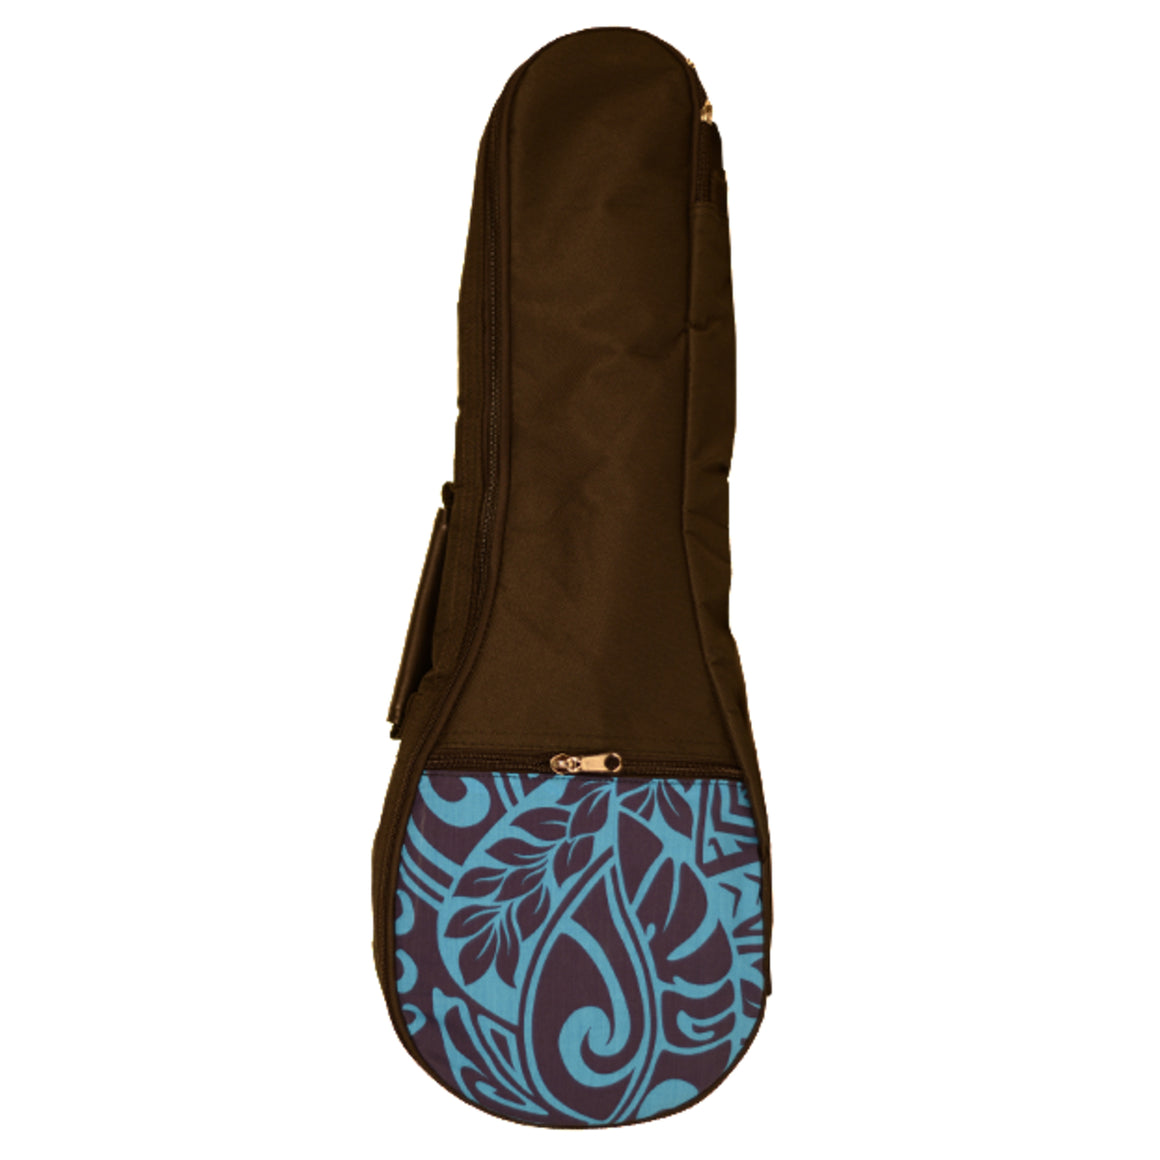 Kala Padded Blue Tribal Soprano Bag